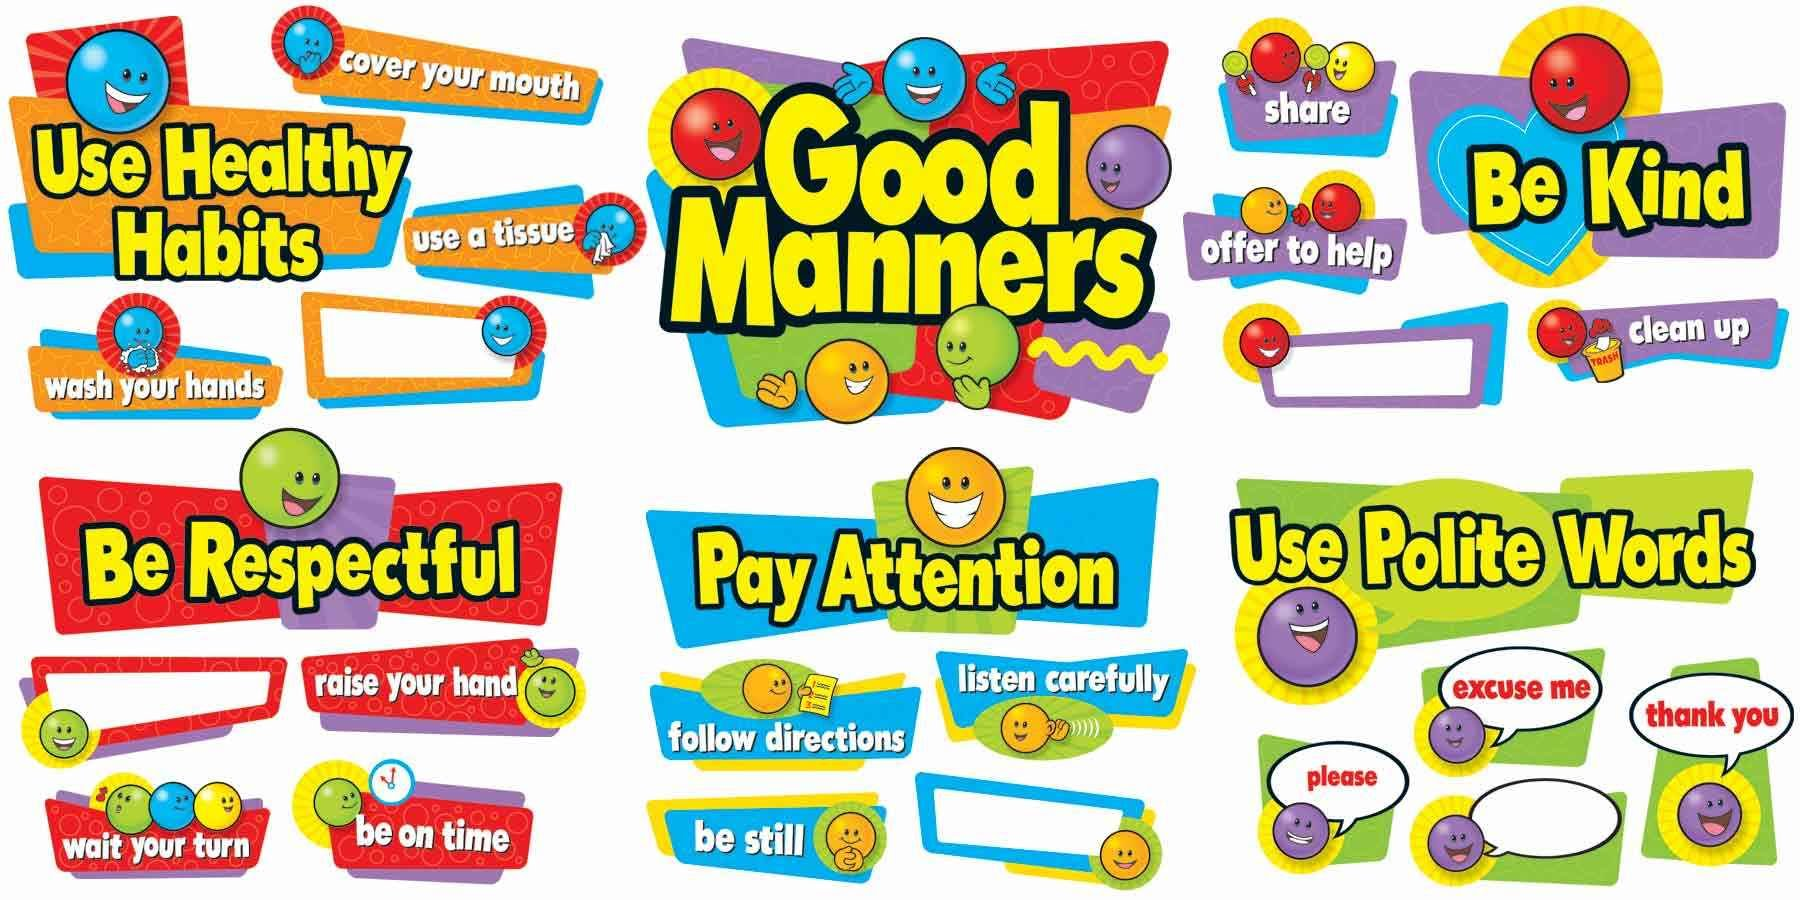 Worksheet On Good Manners